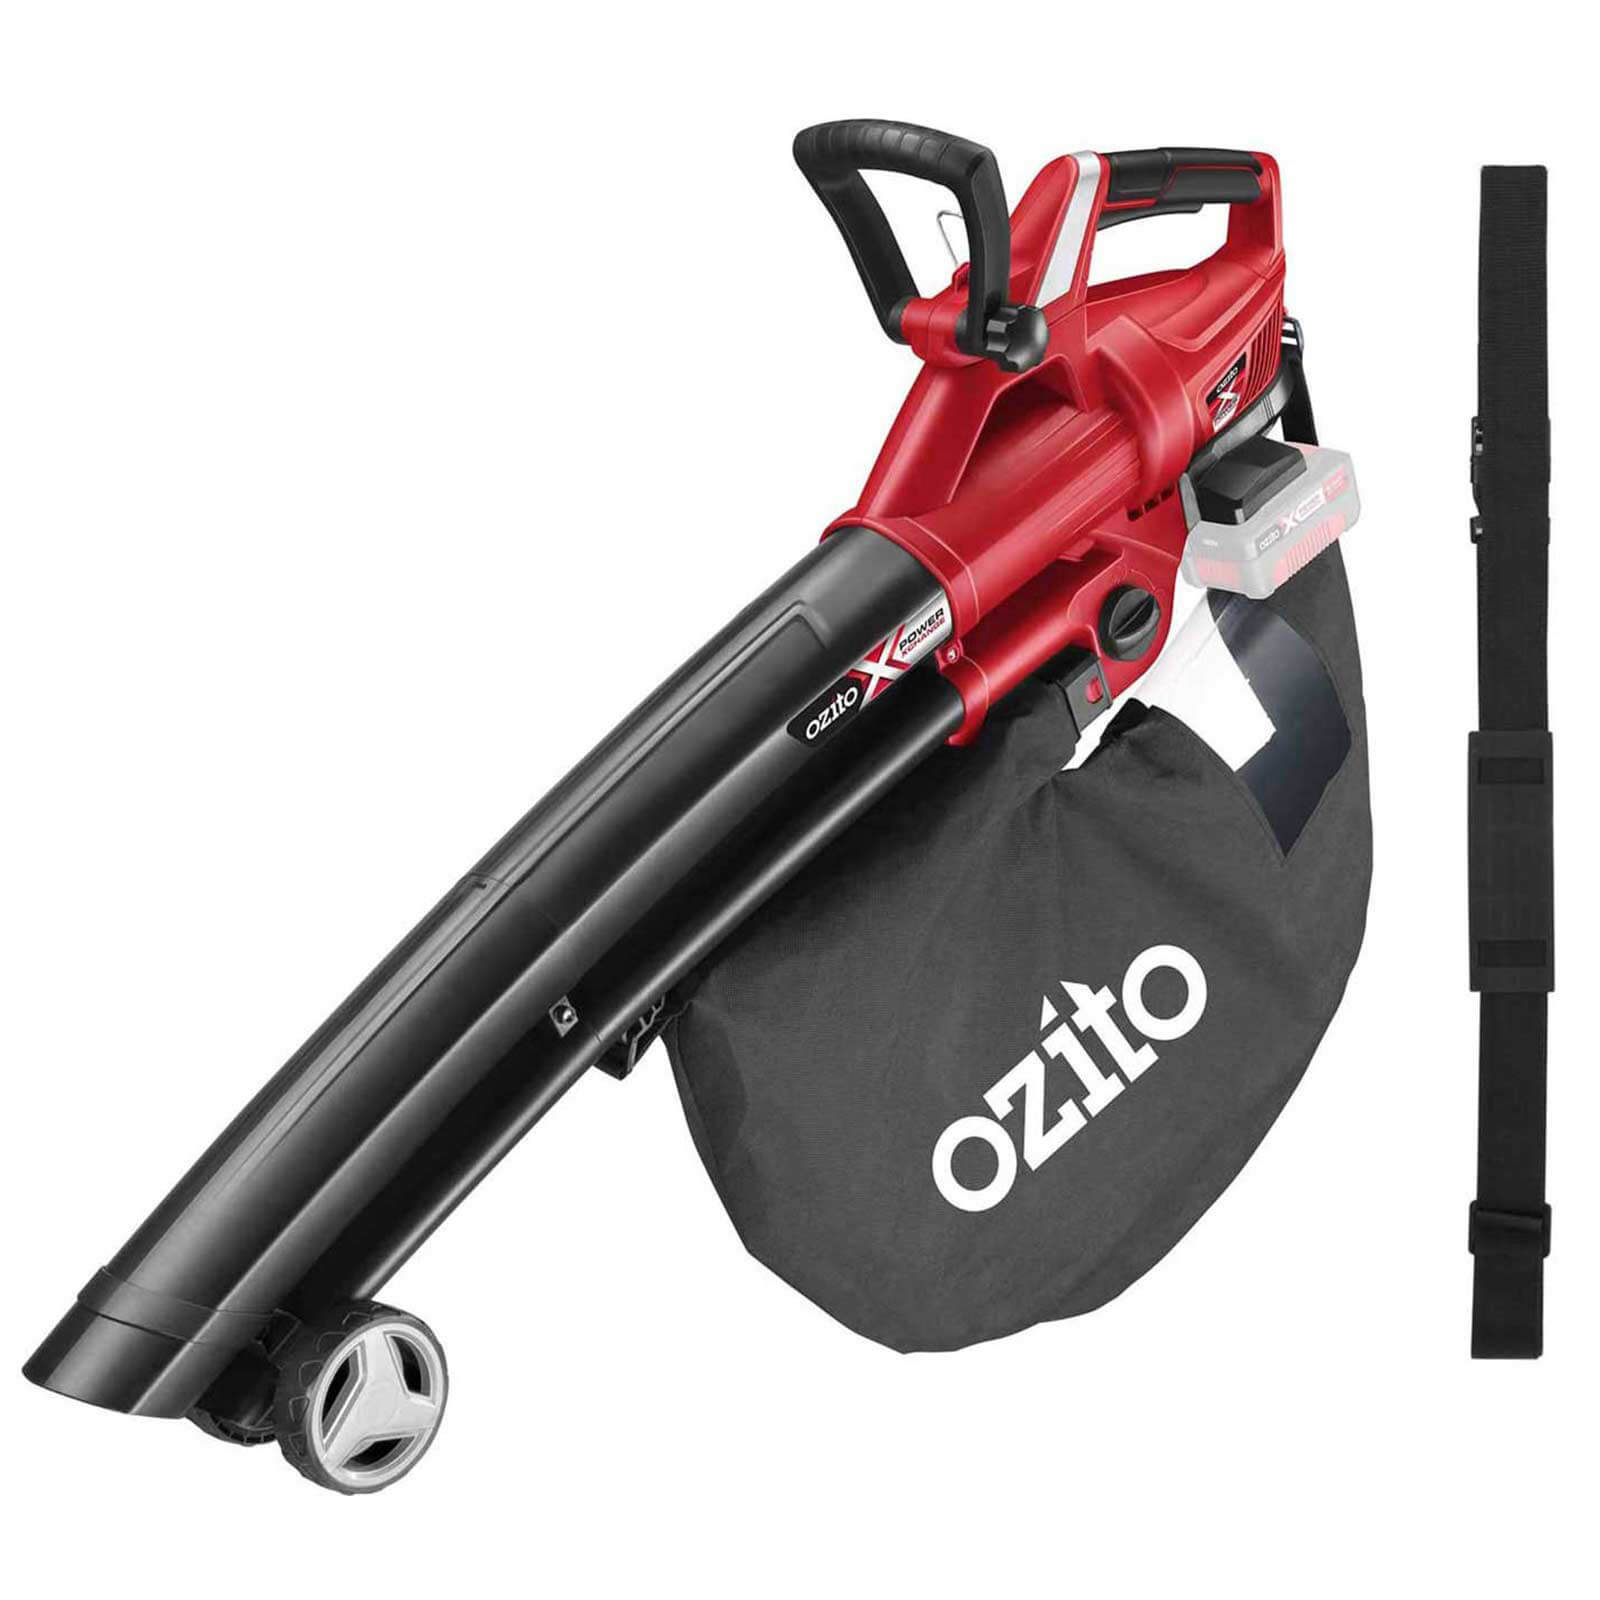 Ozito PXCBLVS 36v Cordless Brushless Garden Vacuum and Leaf Blower (Uses 2 x 18v) No Batteries No Charger